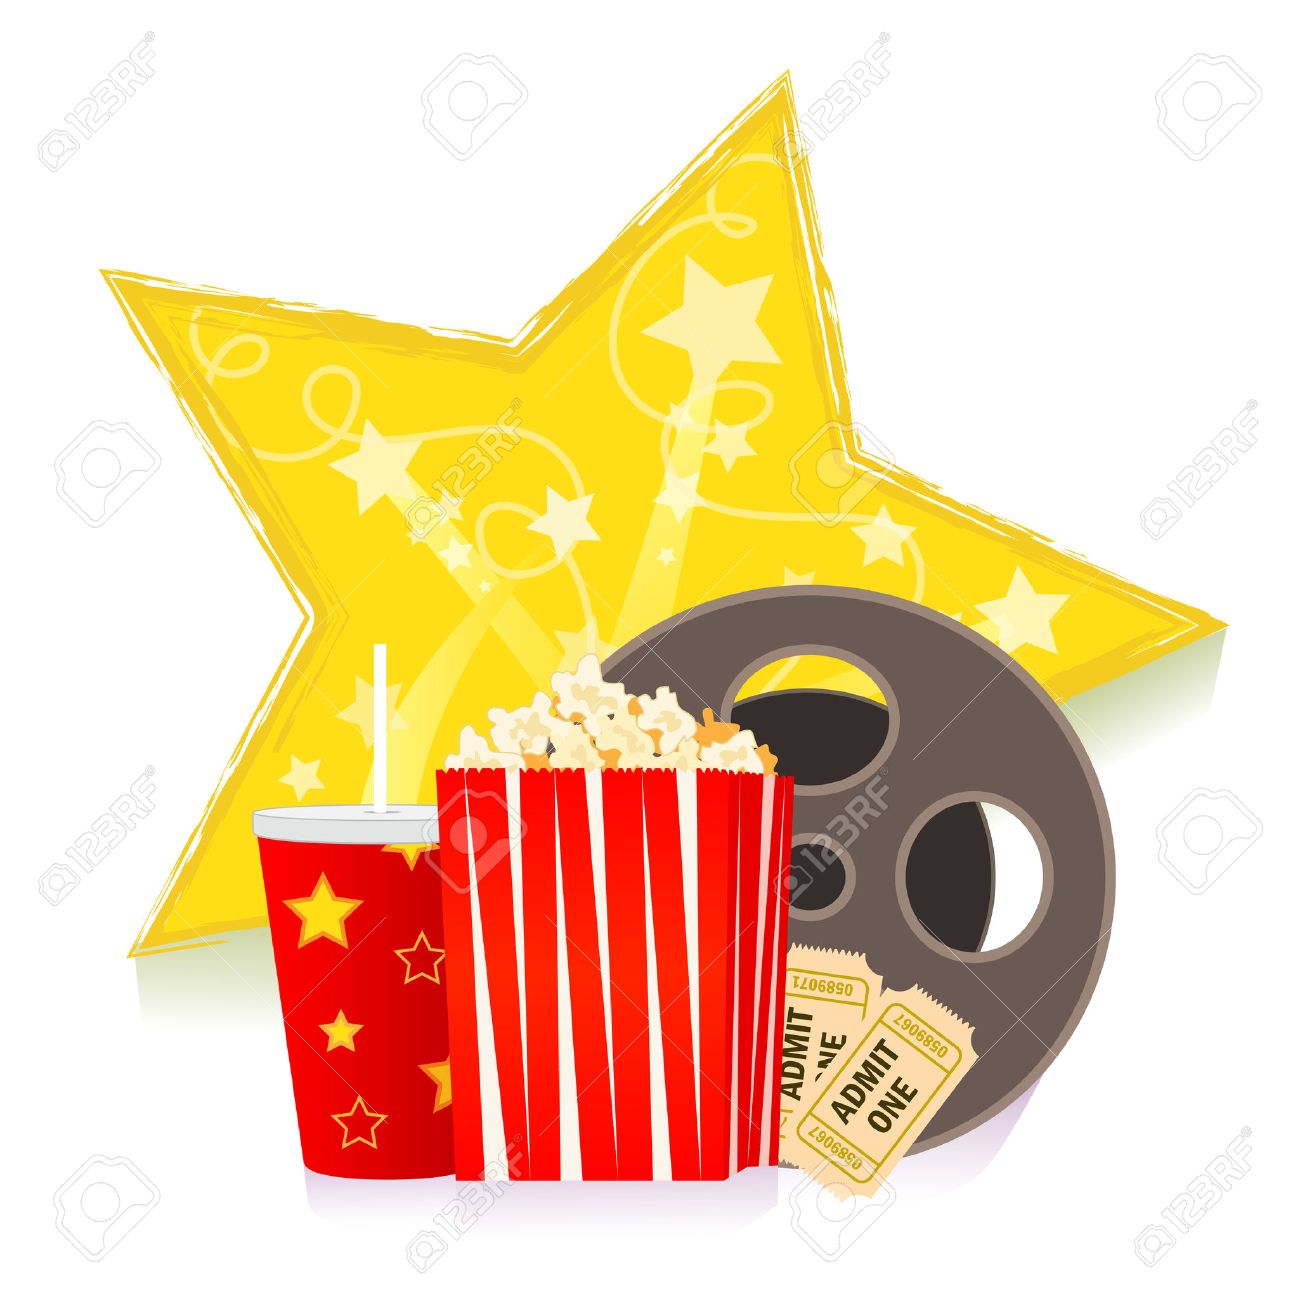 Movie Clip Art Cartoon Popcorn Soda Reel And Movie Tickets Royalty Free Cliparts Vectors And Stock Illustration Image 49170757